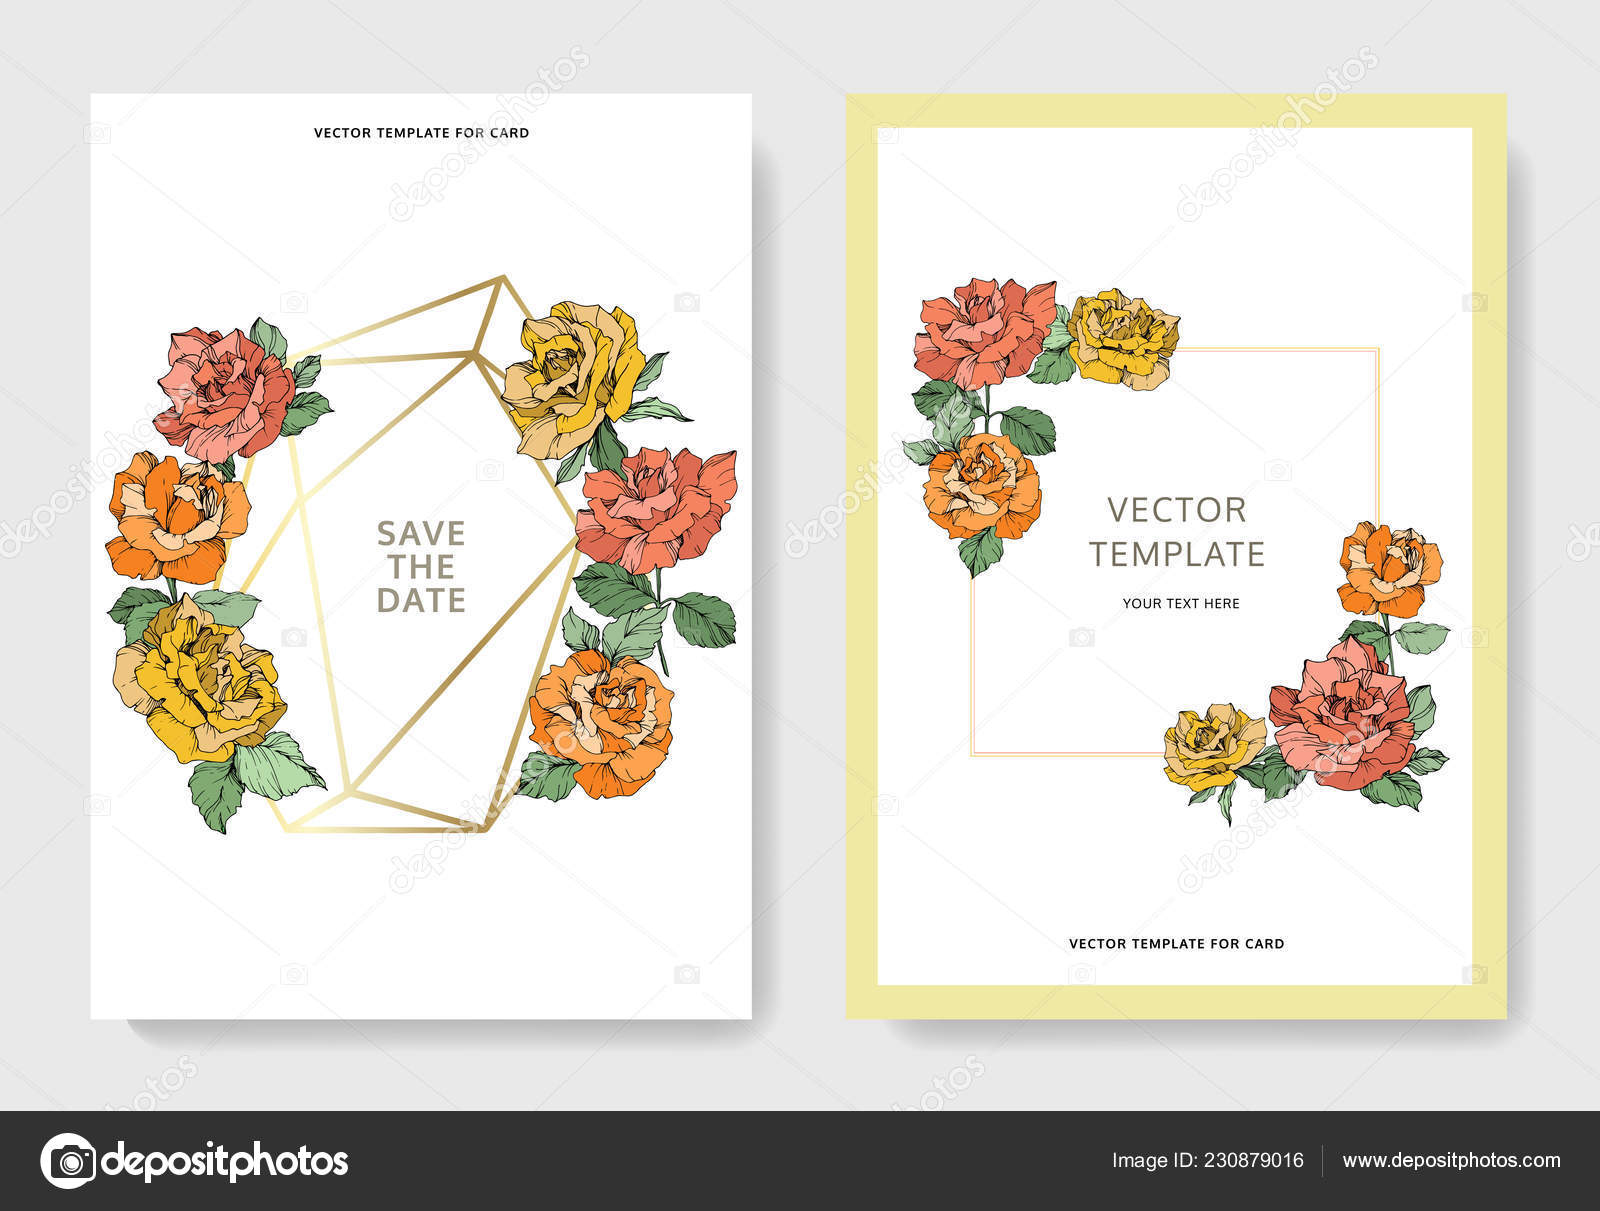 Vector Rose Flowers Wedding Cards Floral Borders Thank You